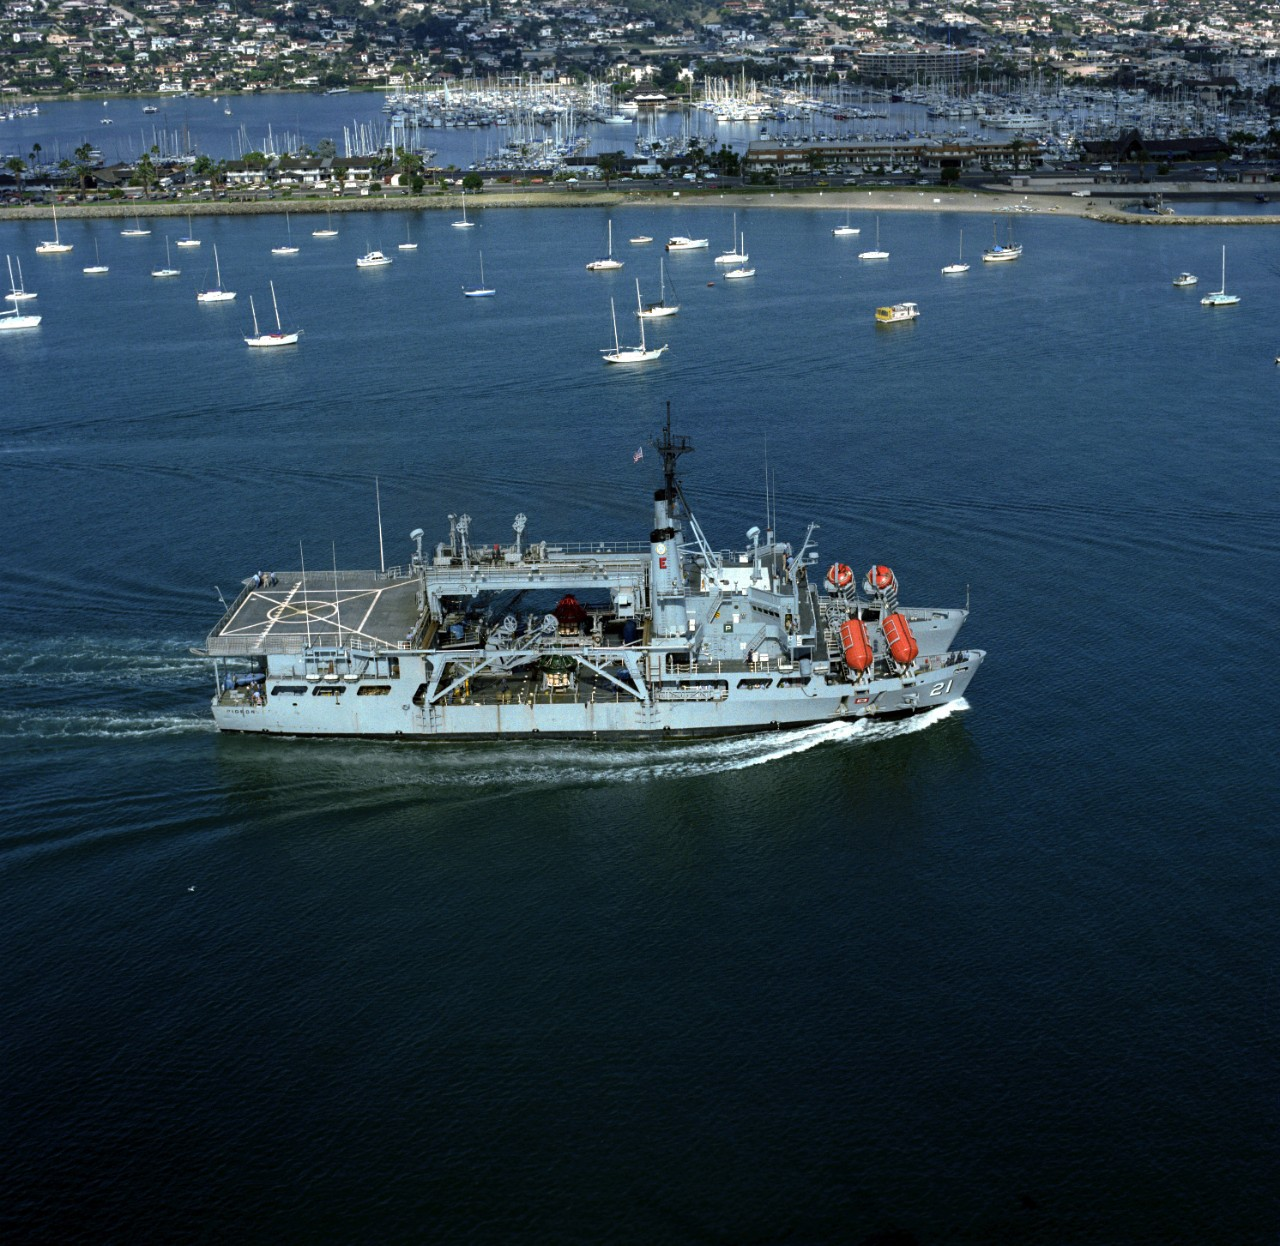 330-CFD-DN-SC-05-06689:   USS Pigeon (ASR-21), 1986.   Aerial starboard view of the US Navy submarine rescue ship, which serves as a surface support ship for deep submergence rescue vehicles (DSRVs) during submarine rescue operations.   Photographed by PH3 Petty, October 17, 1986.  Official U.S. Navy Photograph, now in the collections of the National Archives.